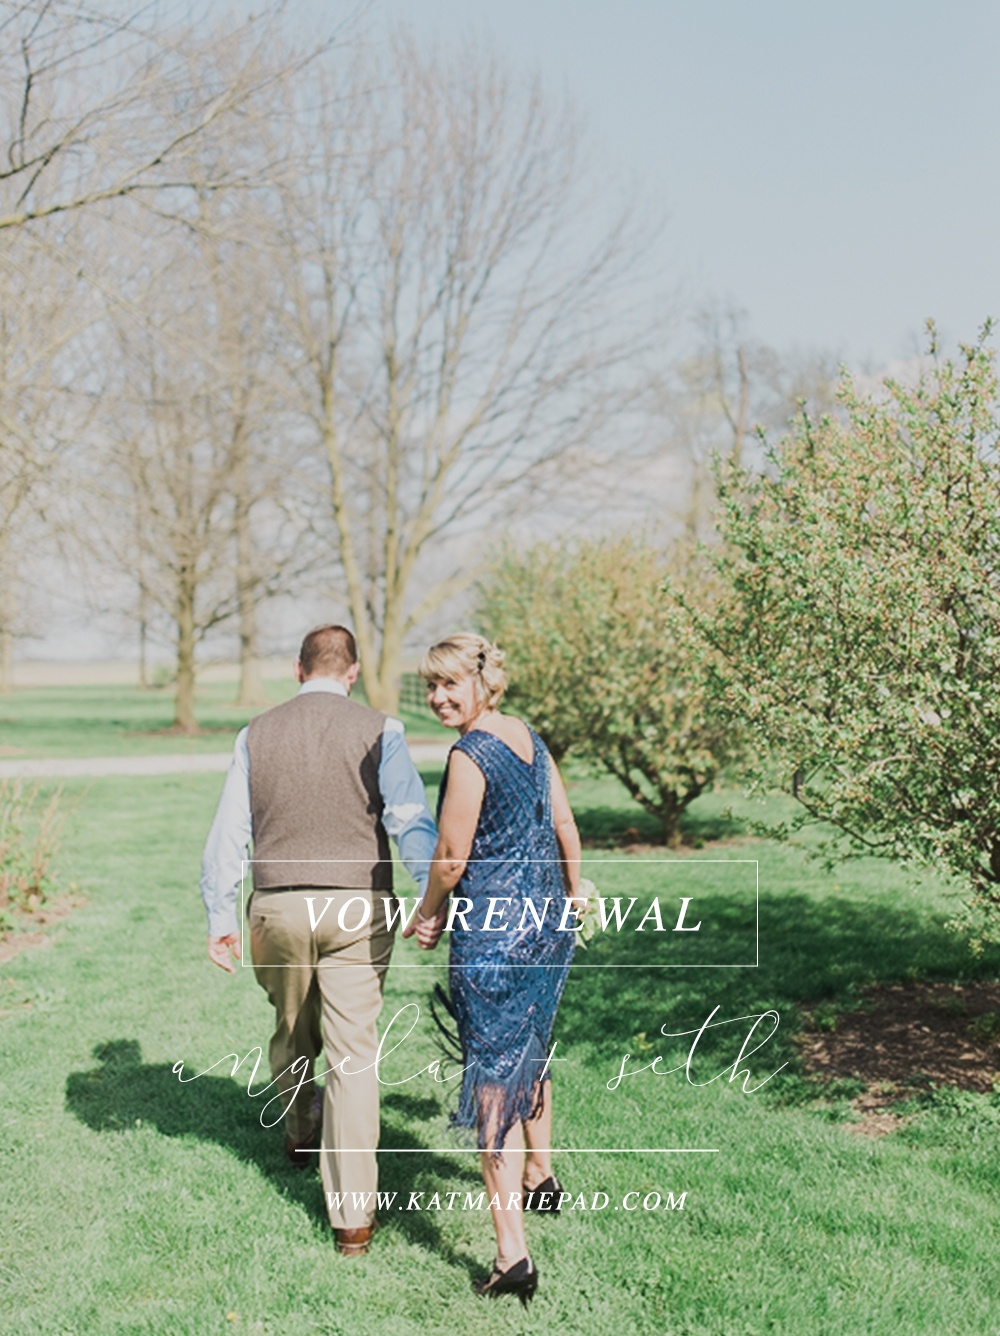 Fine Art Destination Wedding Photographer based in Indianapolis IN